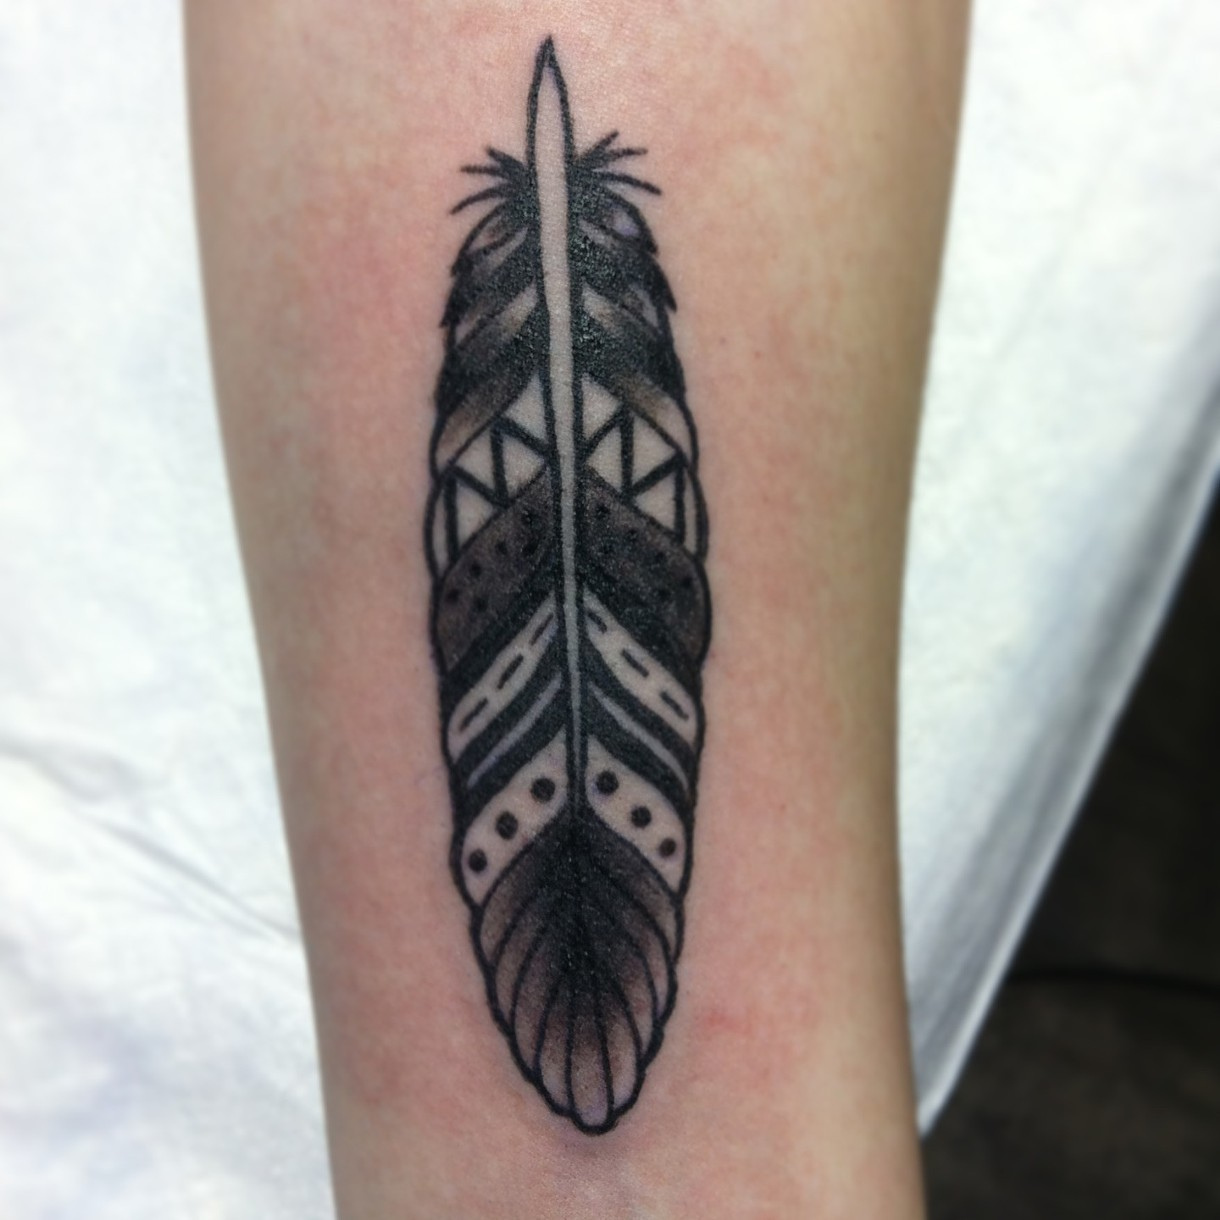 Inspiring Geometric Feather Tattoo On leg for girl